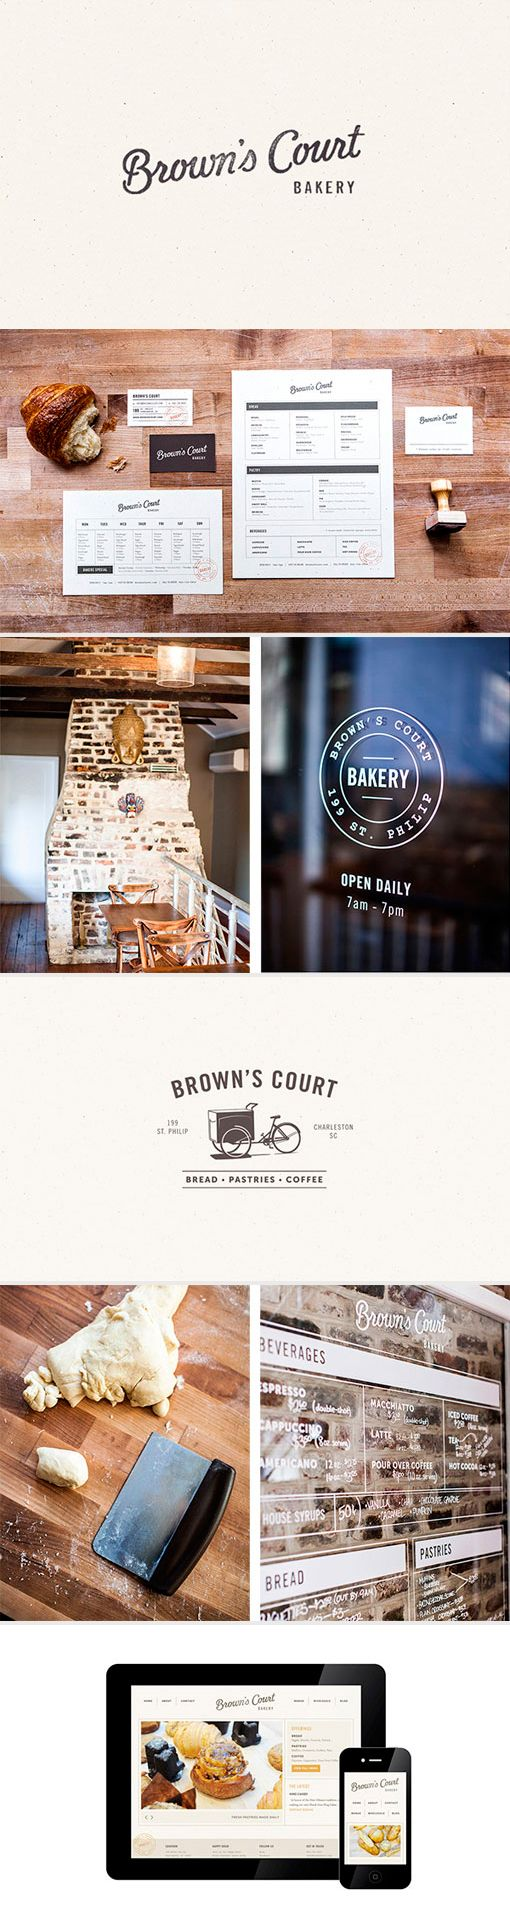 identity / brown's court bakery | #stationary #corporate #design #corporatedesign #identity #branding #marketing repinned by www.BlickeDeeler.de | Visit our website: www.blickedeeler.de/leistungen/corporate-design